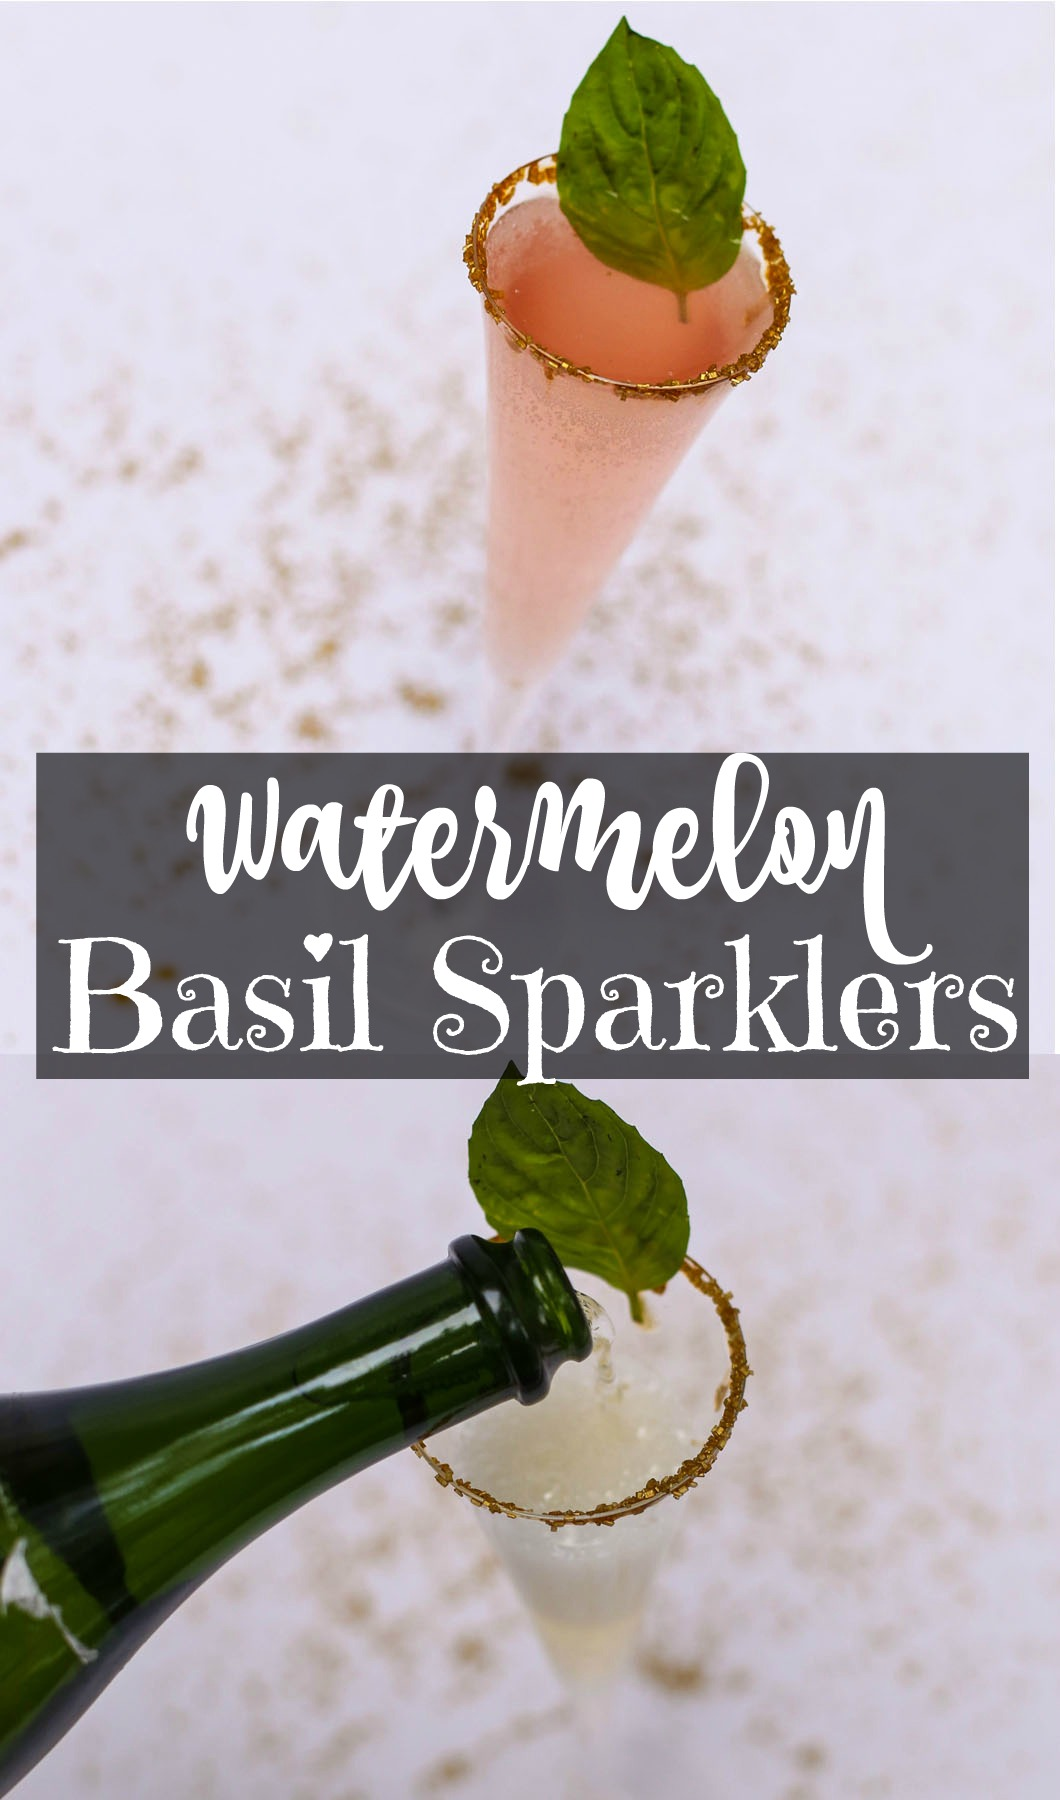 watermelonbasilsparklers - Holiday Beverages: Watermelon Basil Sparklers by Atlanta lifestyle blogger Happily Hughes